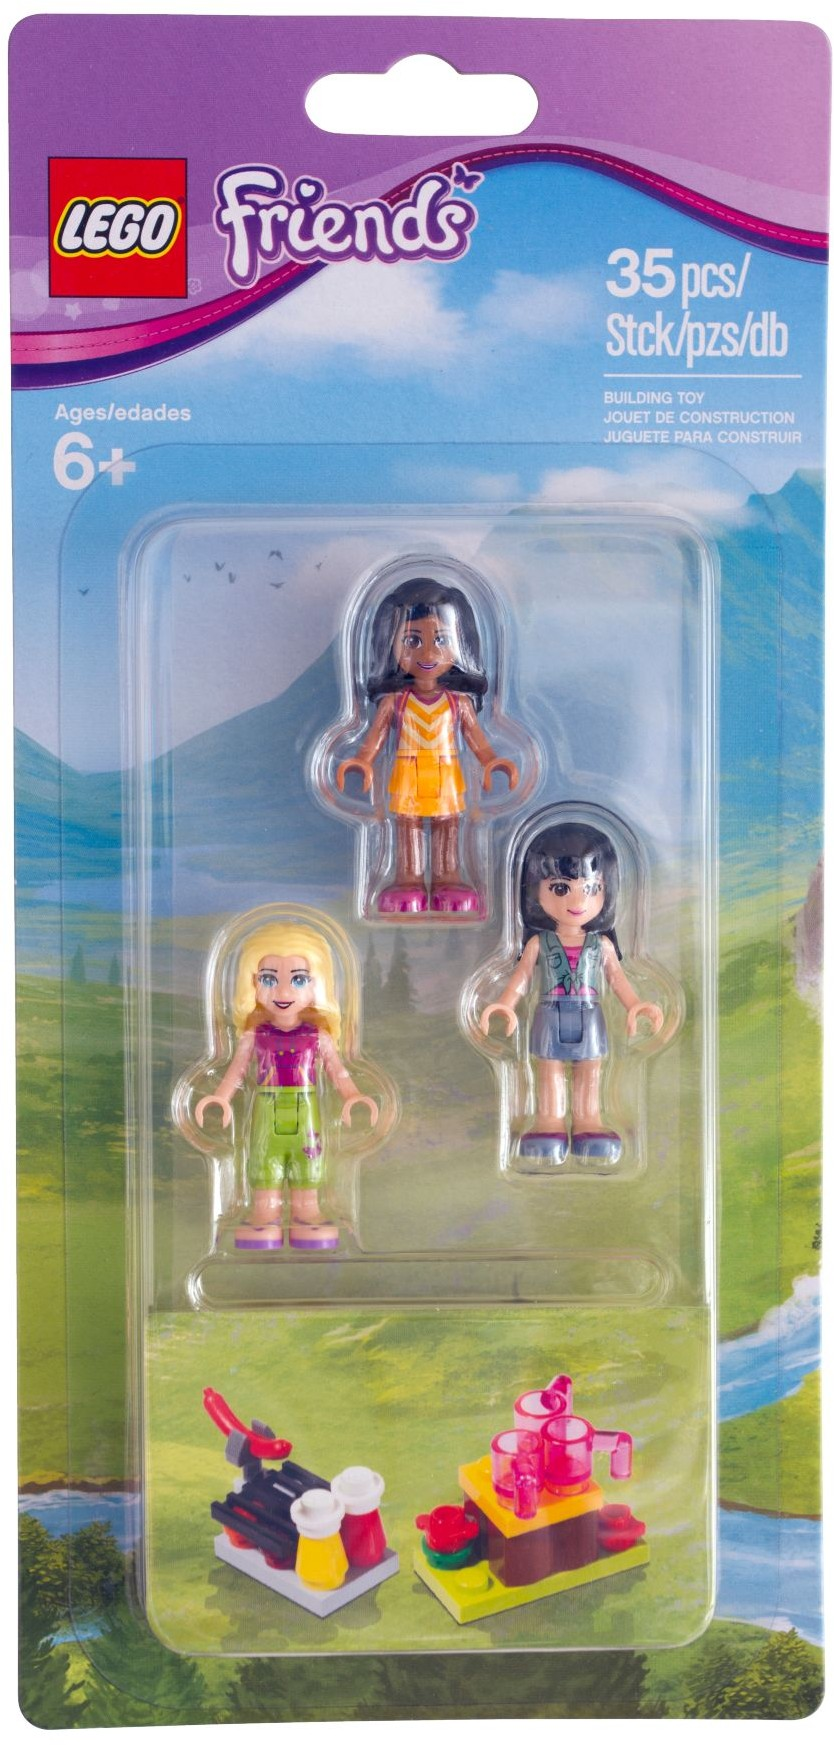 Friends Mini Doll Campsite Set 853556 Lego Friends Wiki Fandom